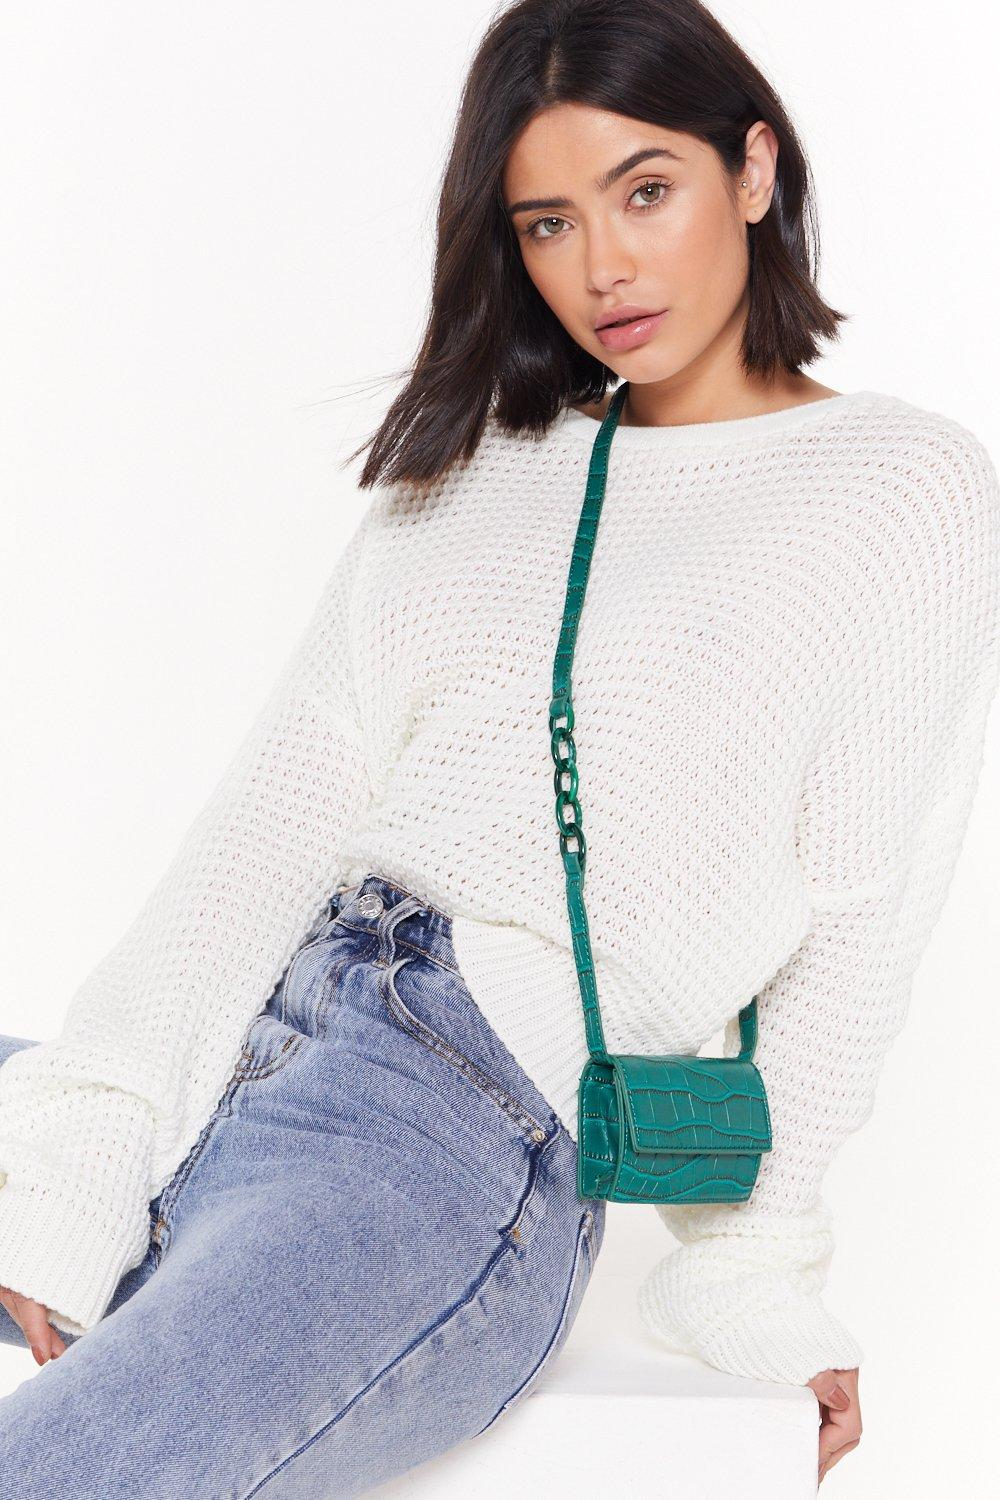 b6851a014171 WANT Getting Croc in Here Faux Leather Crossbody Bag   Shop Clothes at  Nasty Gal!